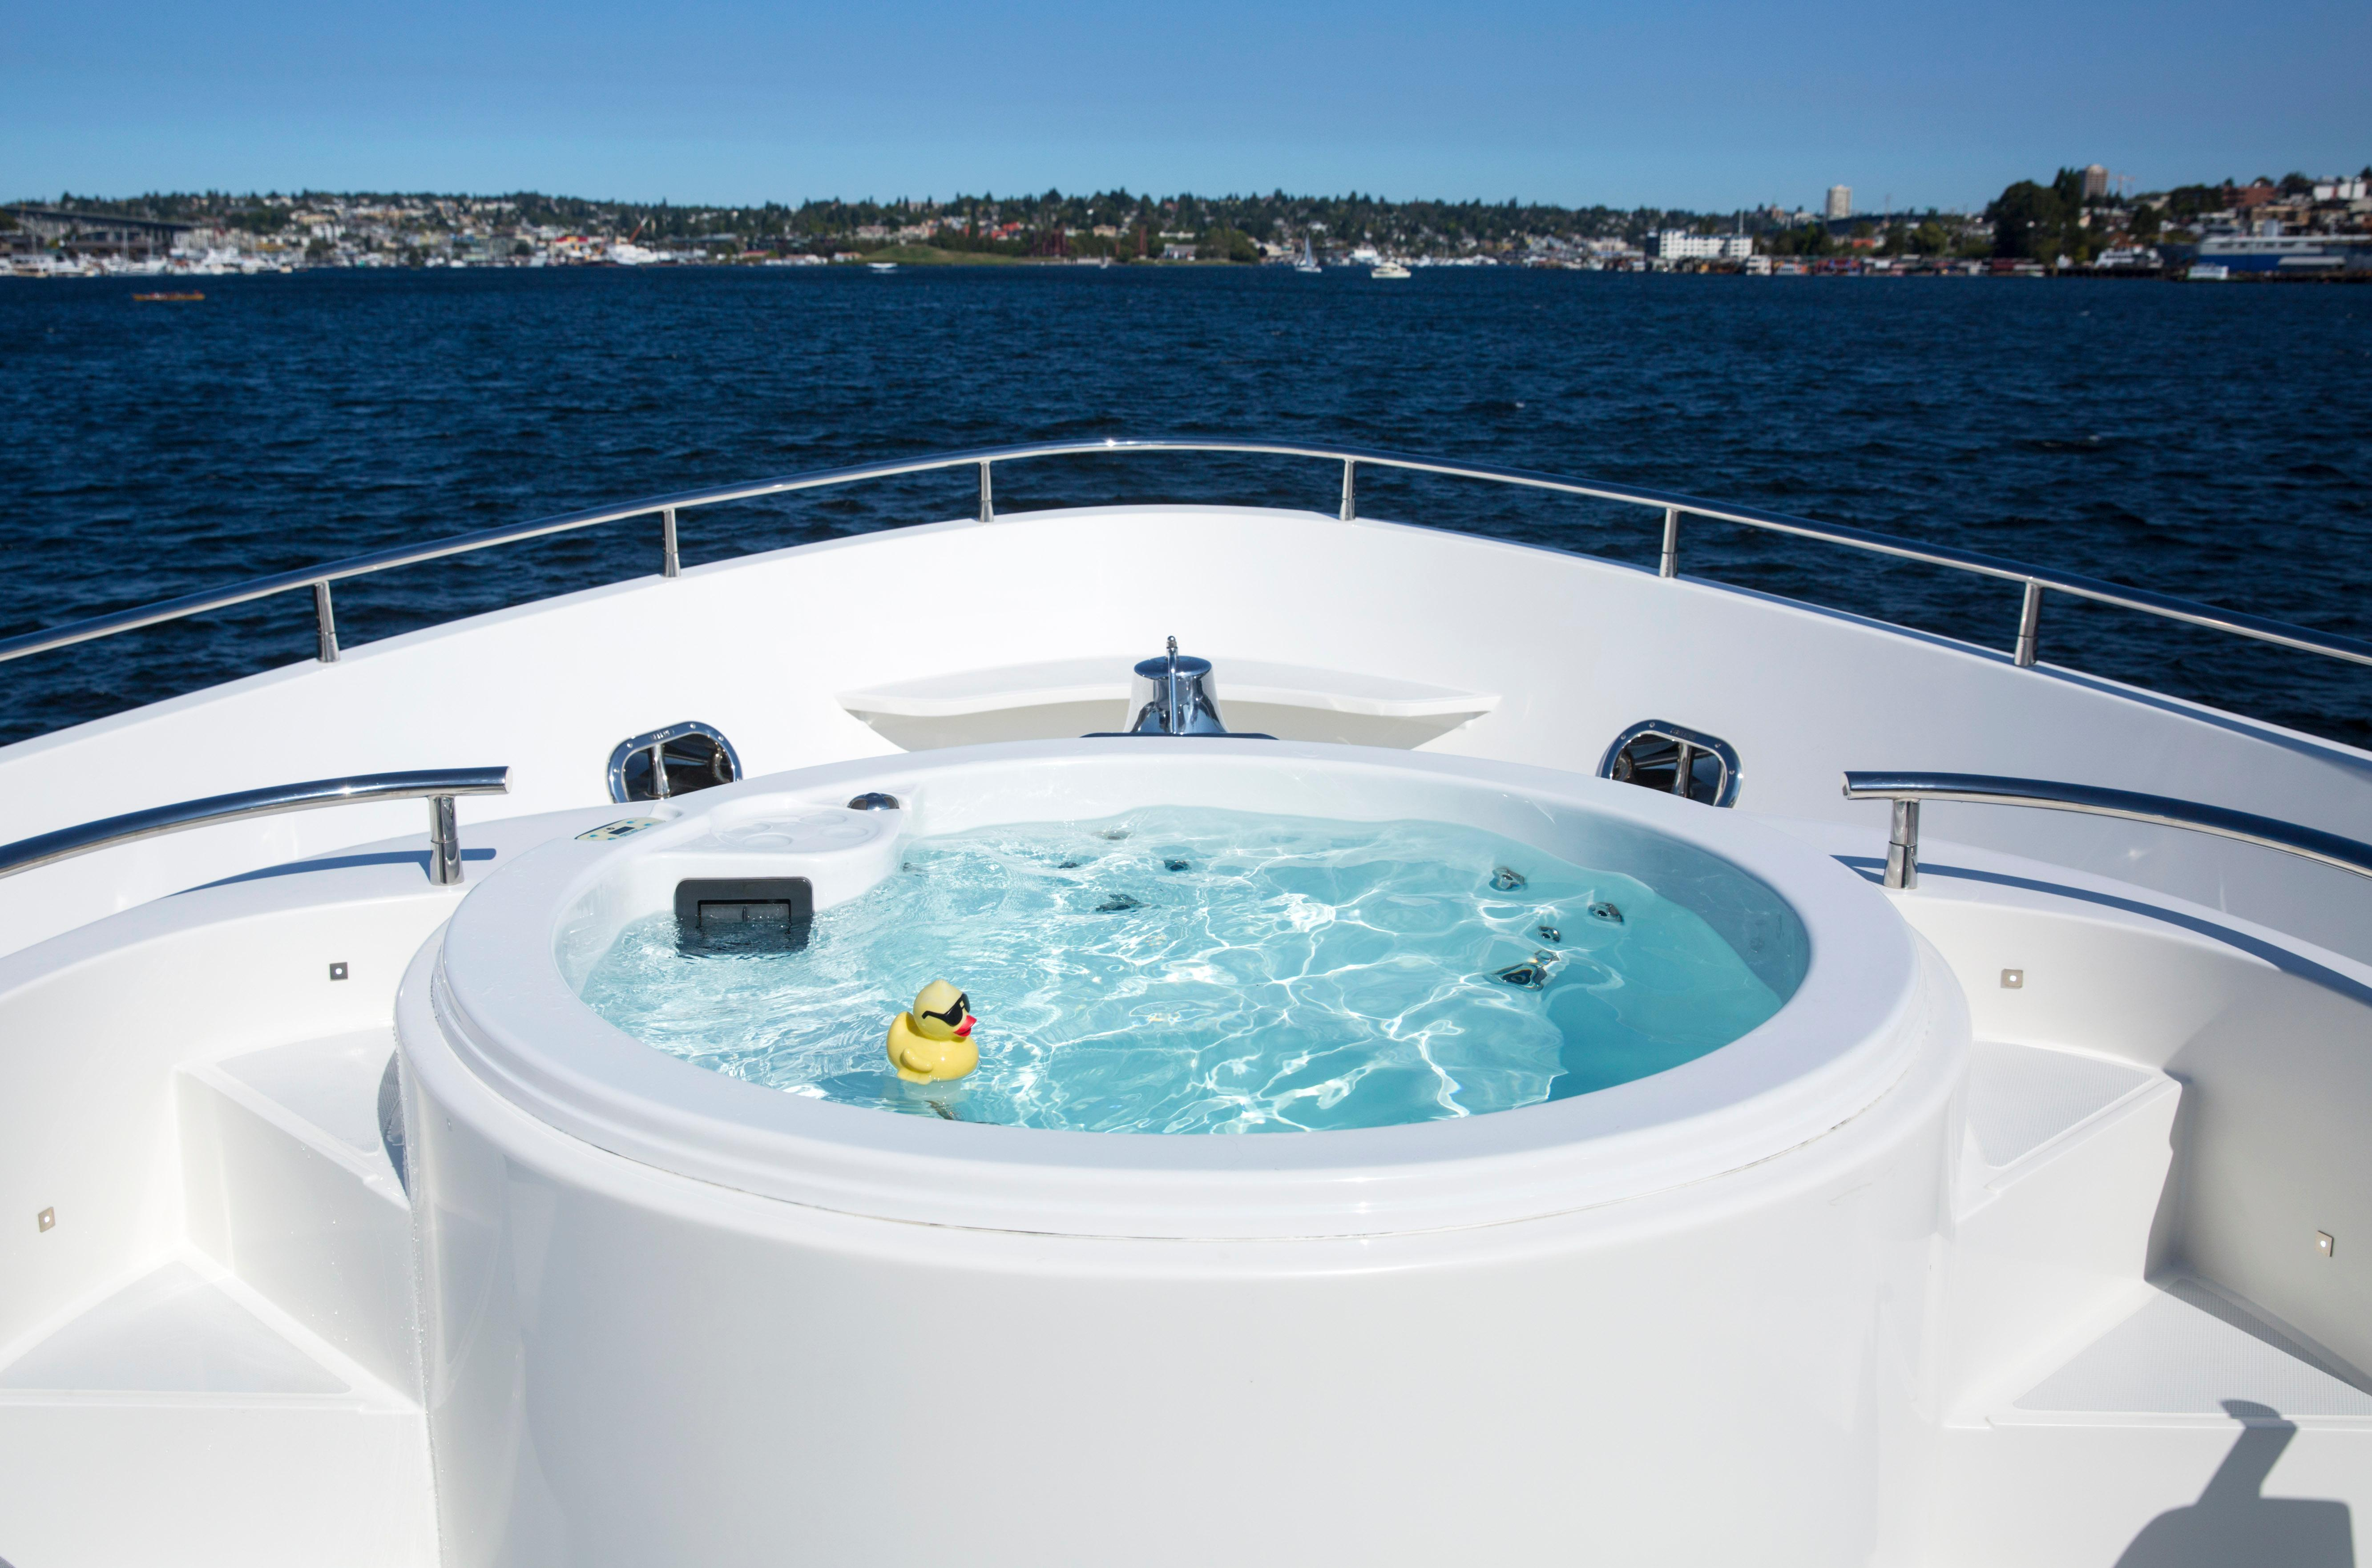 We took a tour aboard the most expensive boat we could find at the 2017 Boats Afloat Show on South Lake Union. The recently built, 92' Selene comes with a price tag of $6 million, and boasts six bedrooms, six bathrooms, a hot tub, and two diesel engines that will take you all the way to Hawaii on one tank of gas. Other features include a living room with a disappearing TV, and a boat deck fitted with two smaller watercraft. (Sy Bean / Seattle Refined)